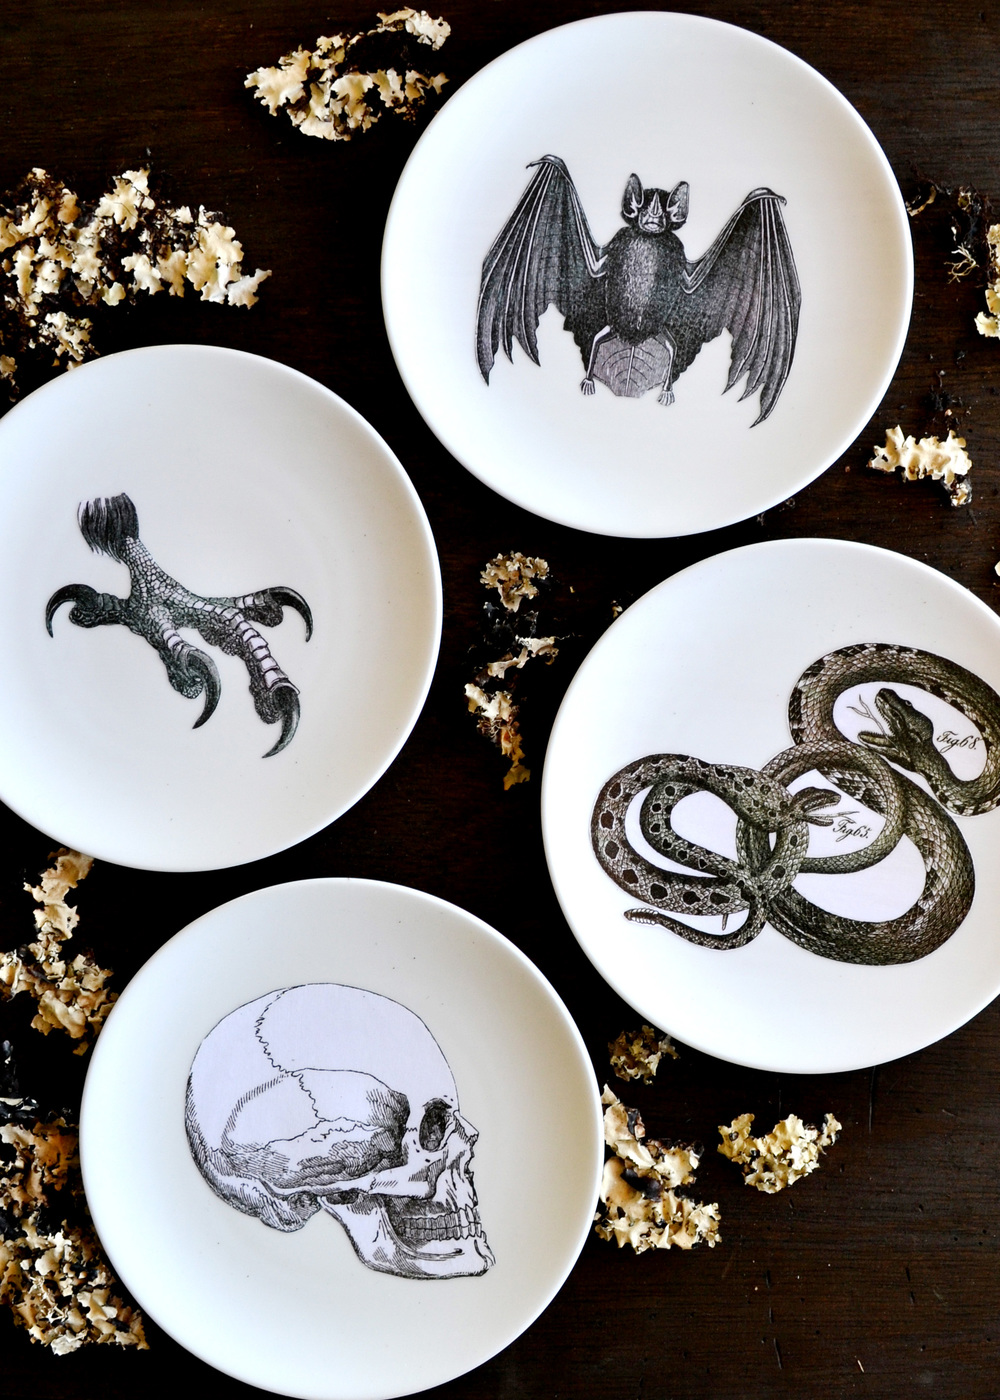 Make your own silhouette plates - would be so cool to personalize for a Halloween party : halloween dinnerware sets - pezcame.com